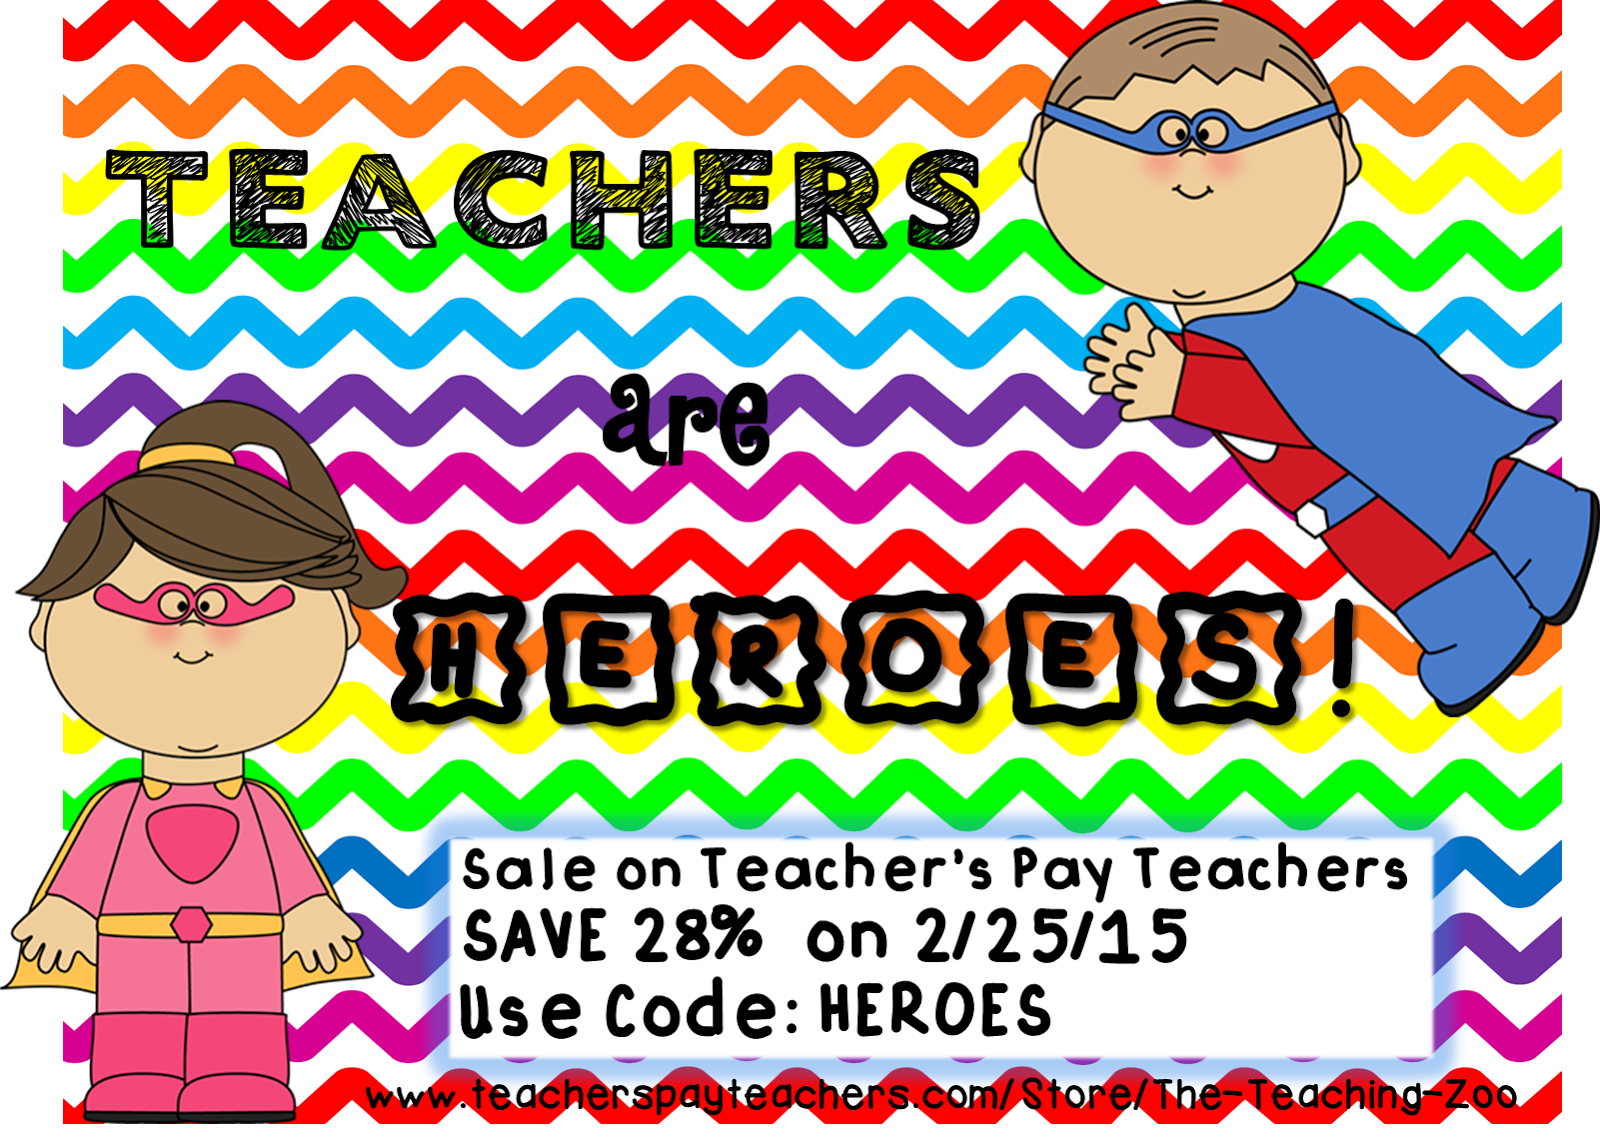 http://www.teacherspayteachers.com/Store/The-Teaching-Zoo